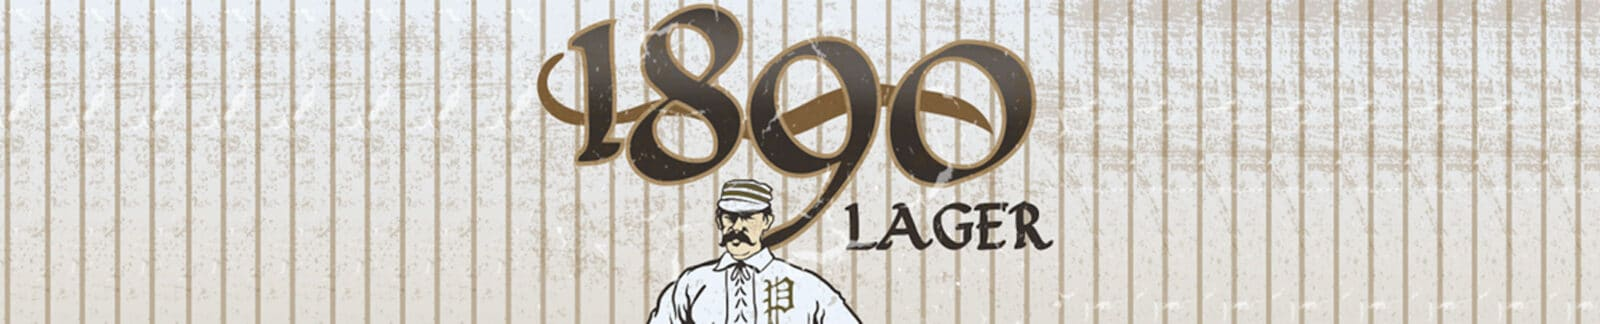 Burgh'ers Brewing – 1890 Lager - header